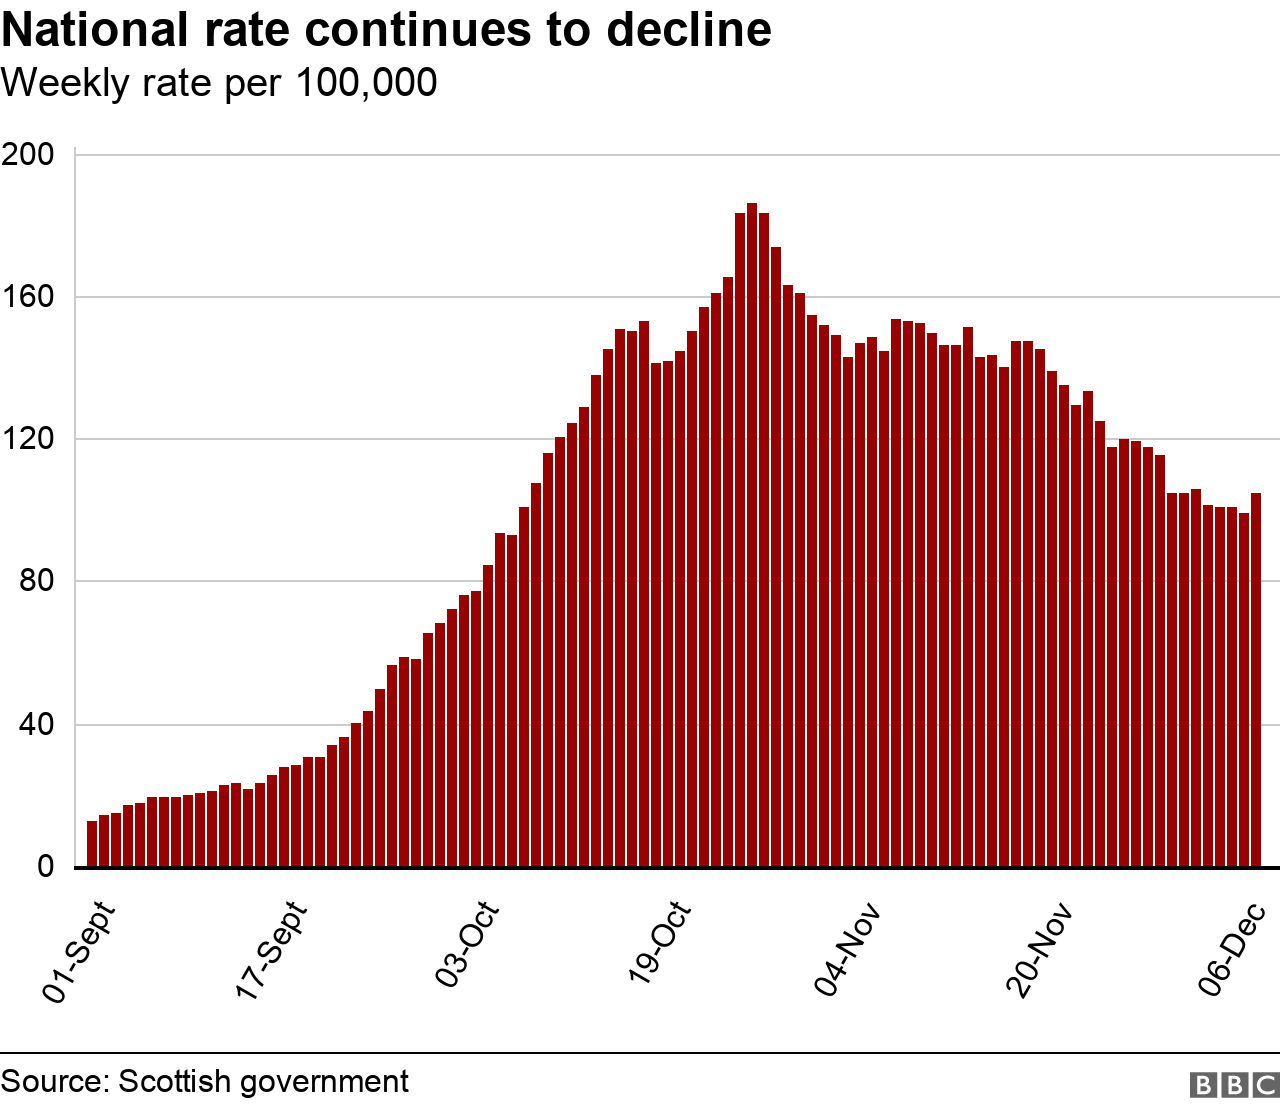 National rate